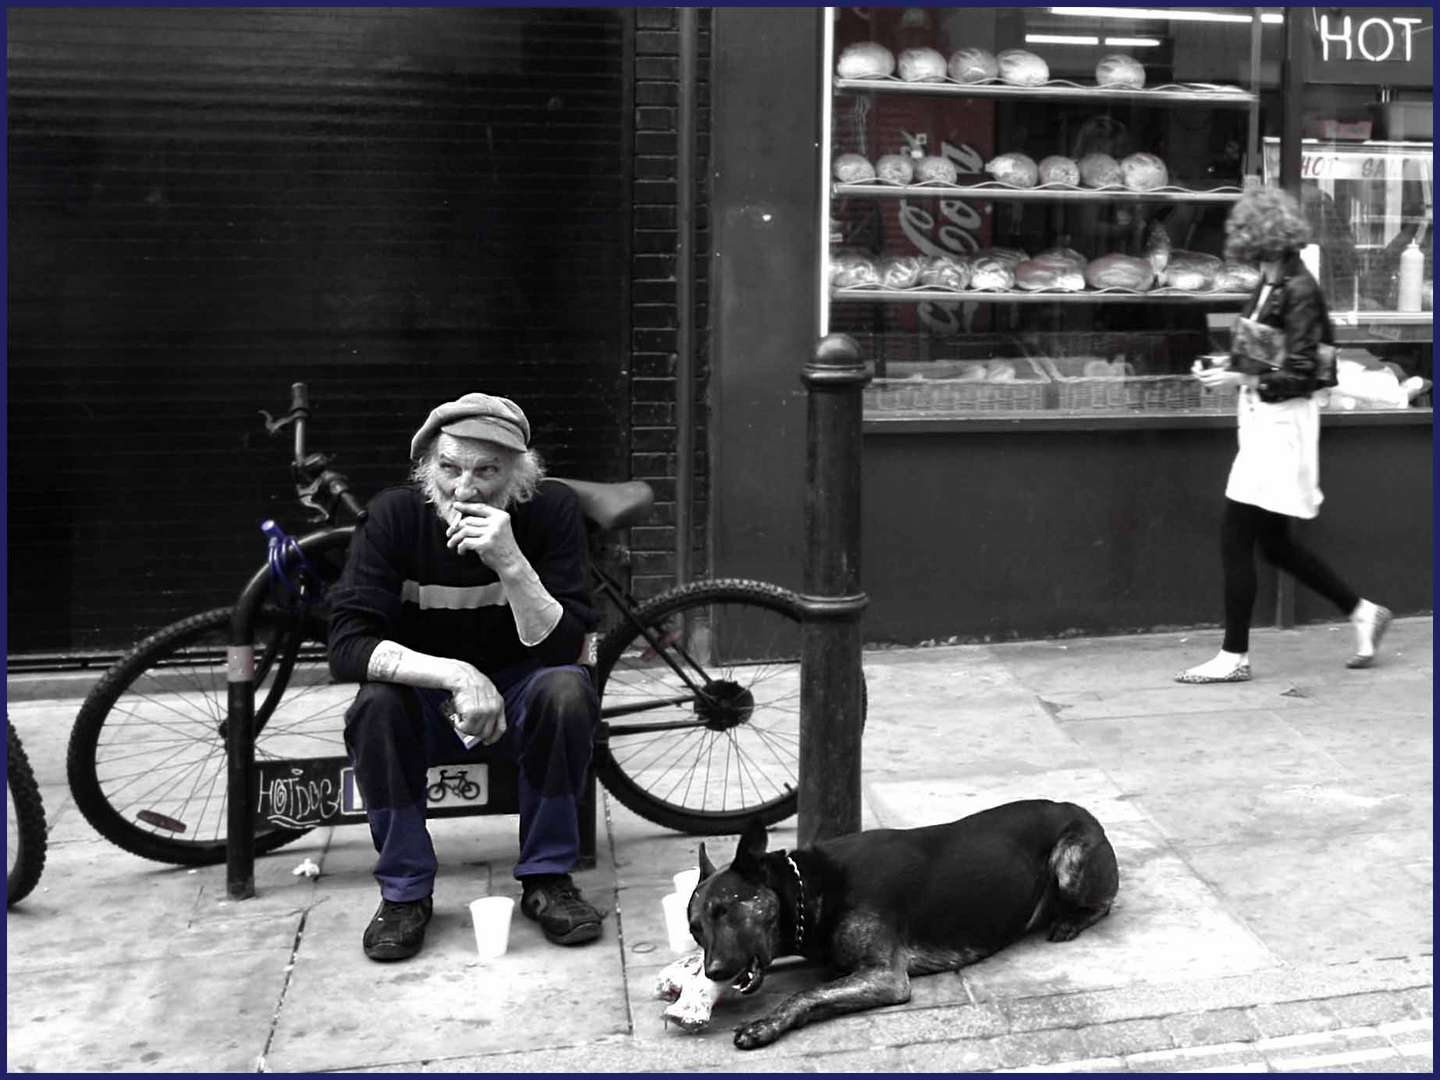 Old Man and the Street